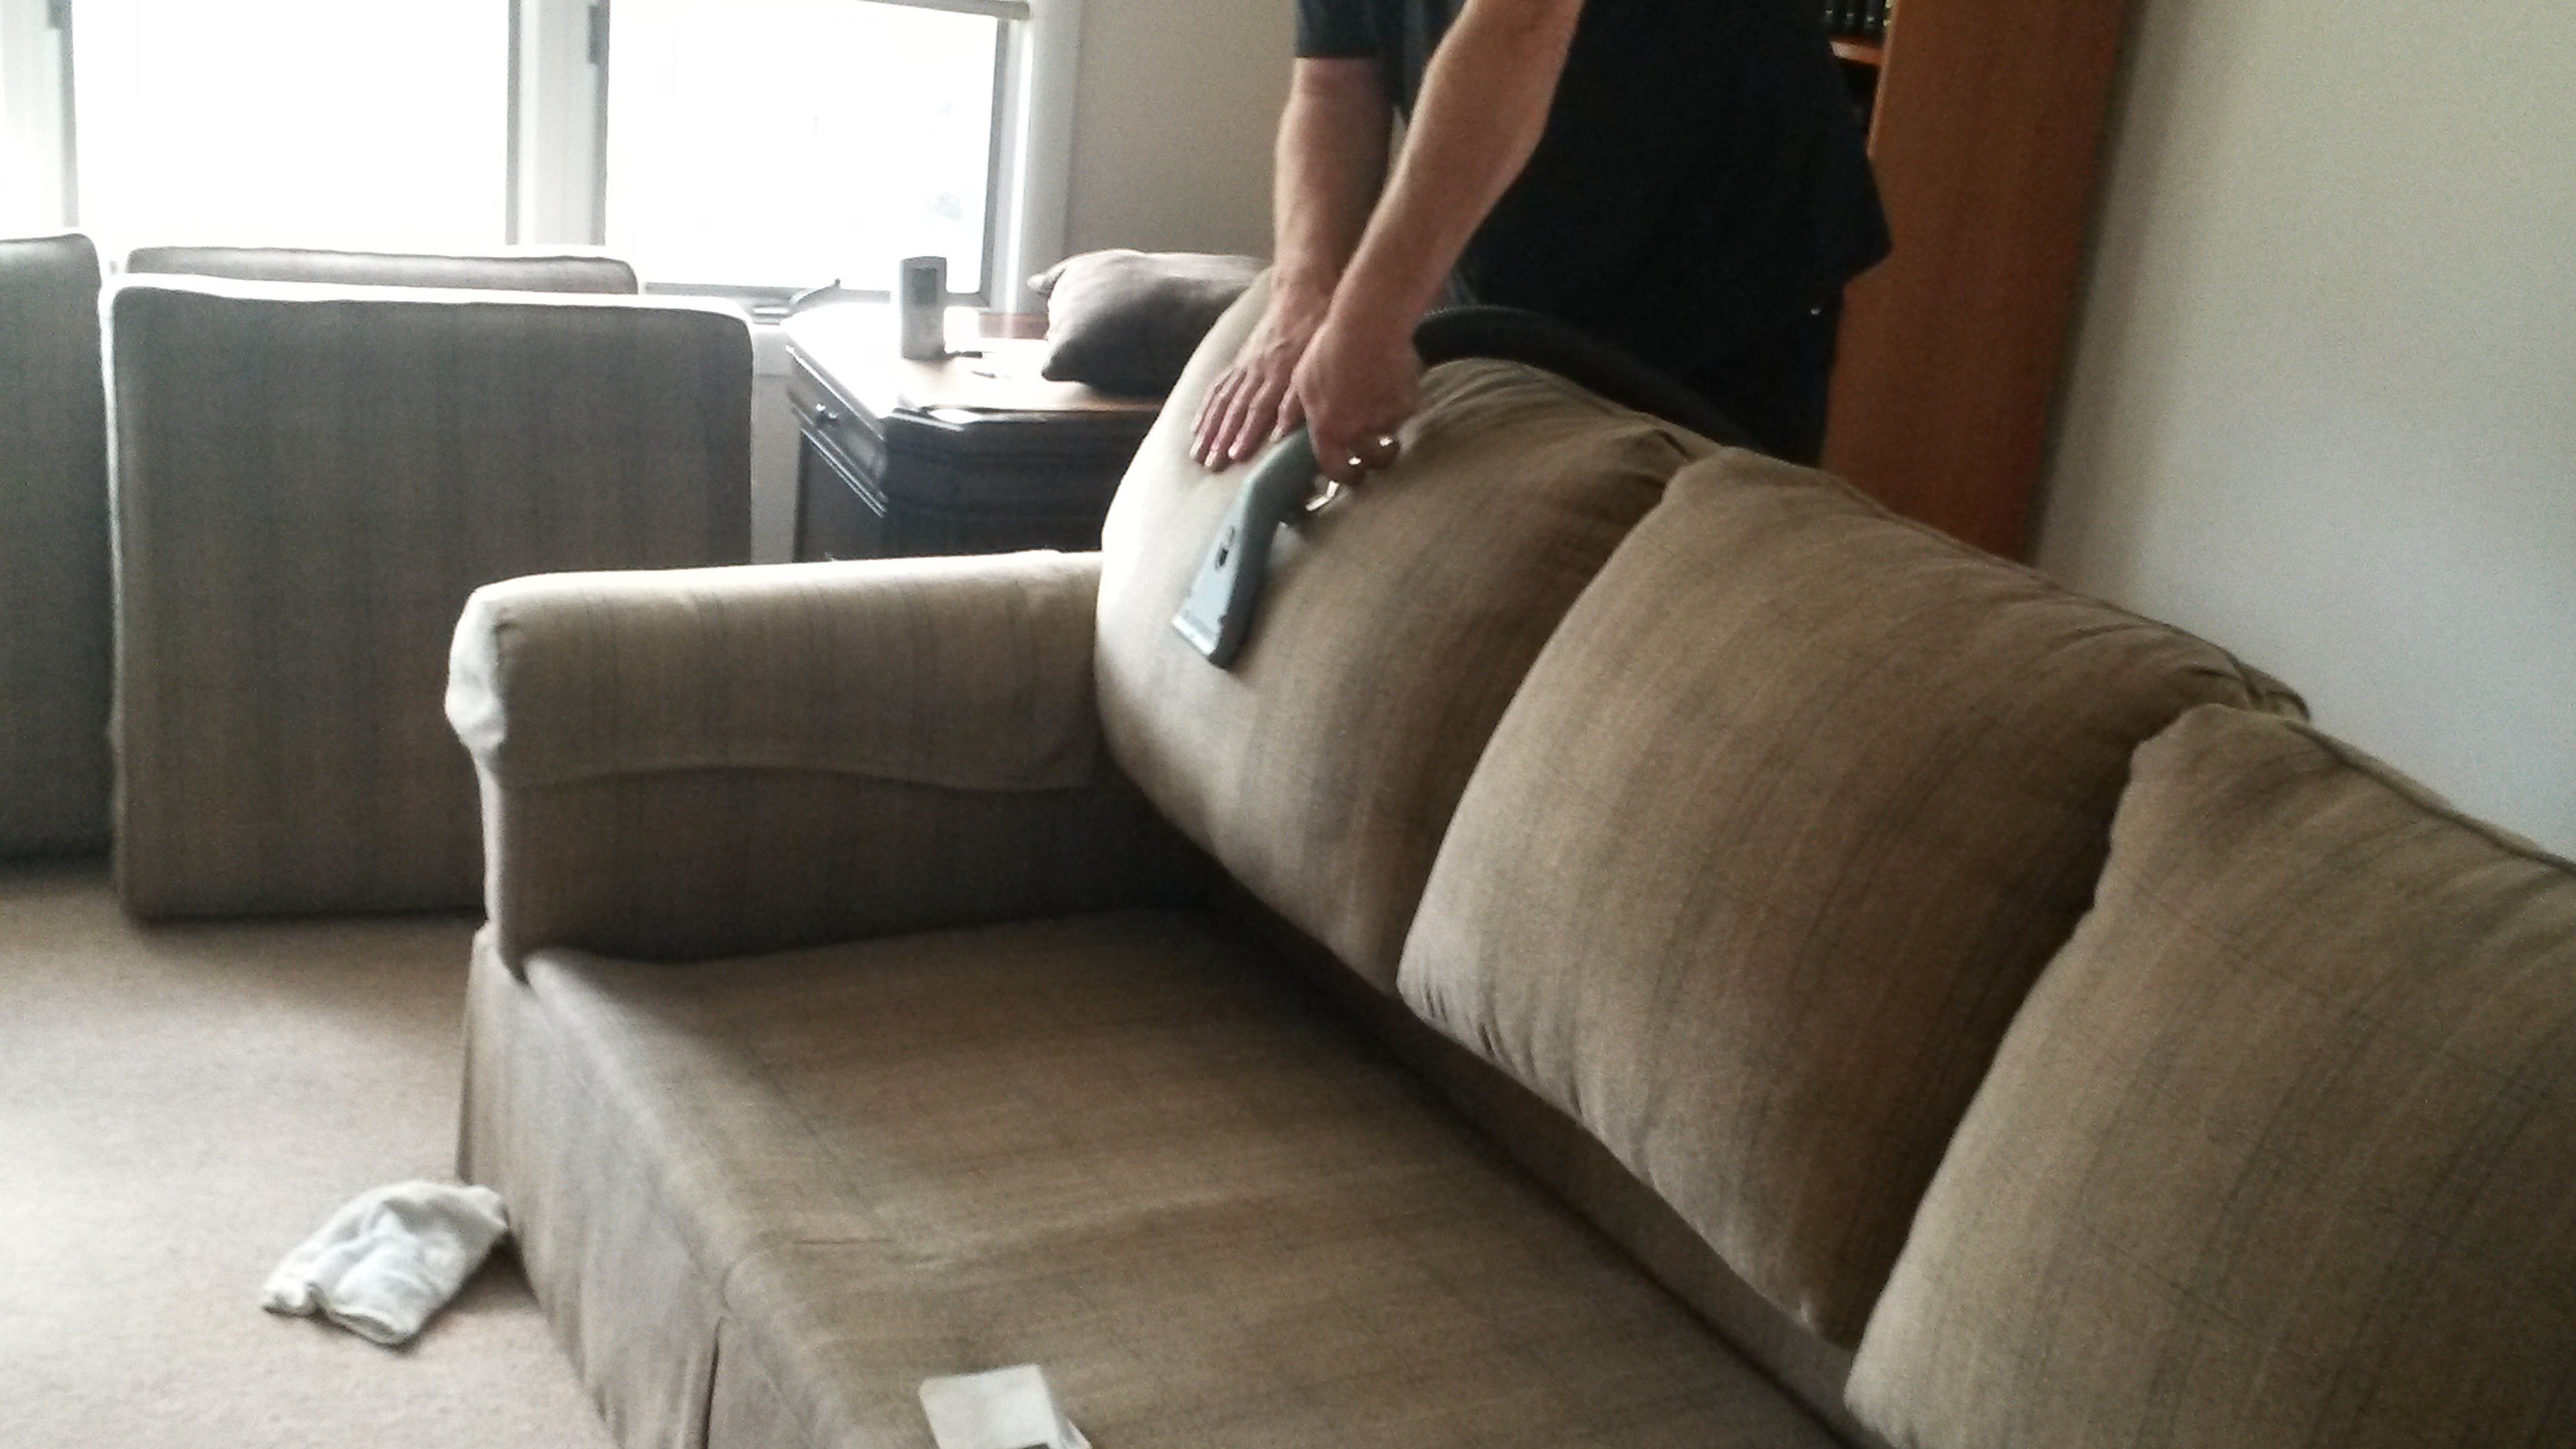 chelsea sofa st albans bed 72 inches cleaning cleaners